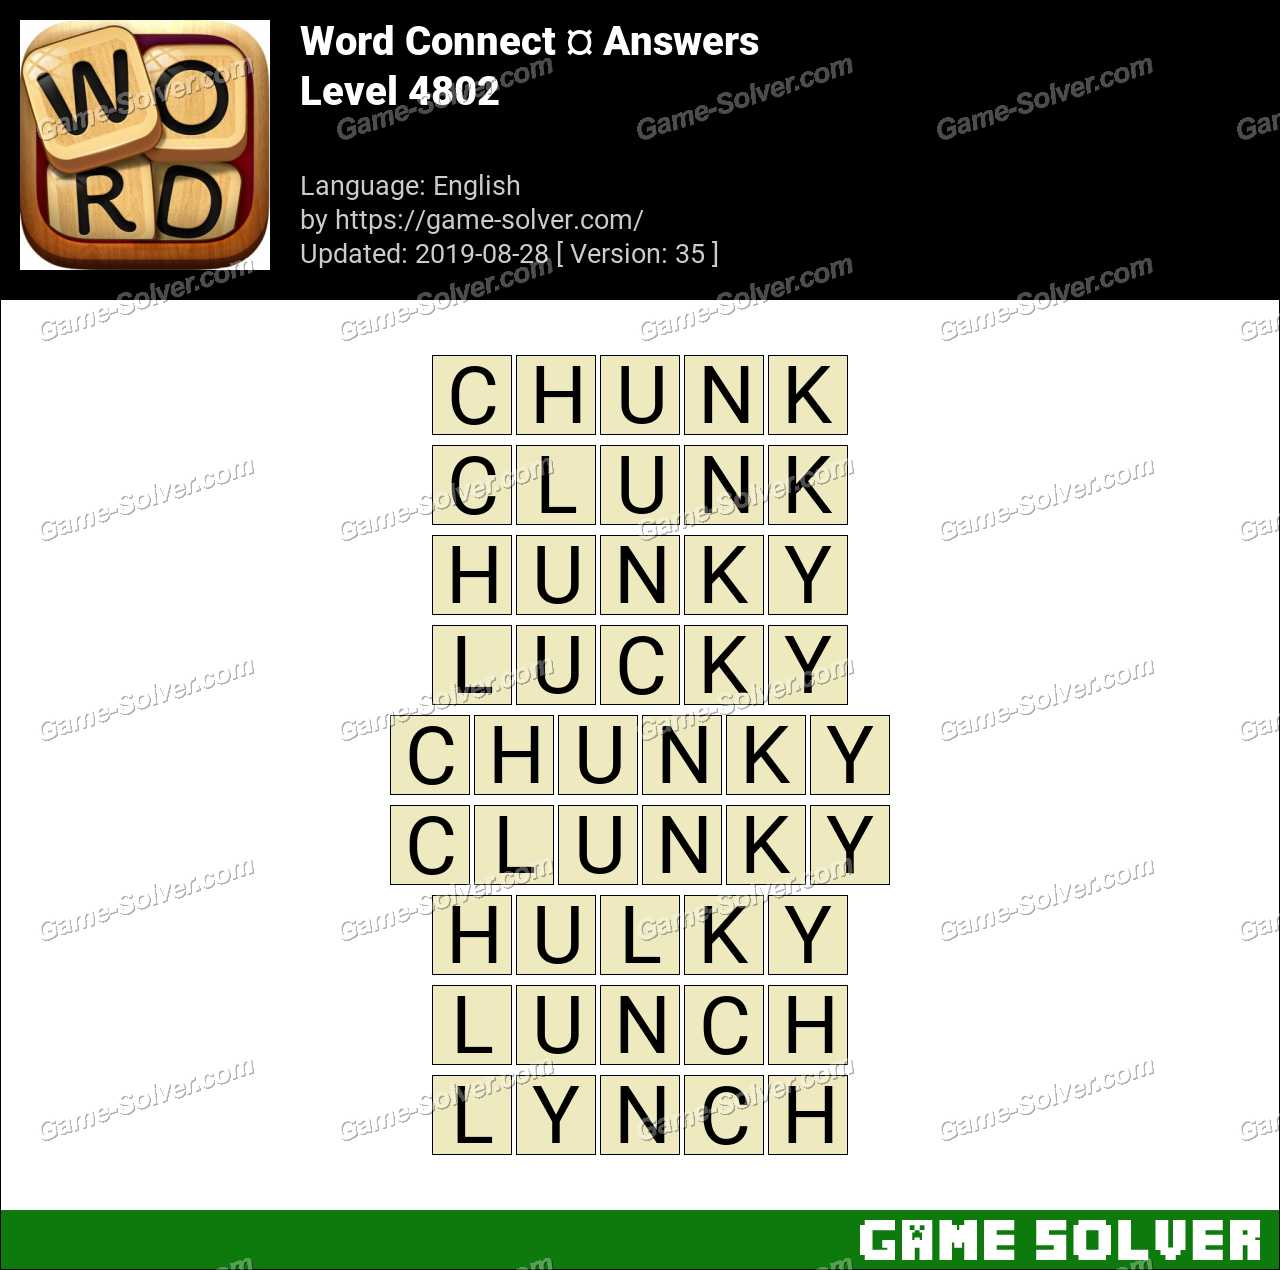 Word Connect Level 4802 Answers